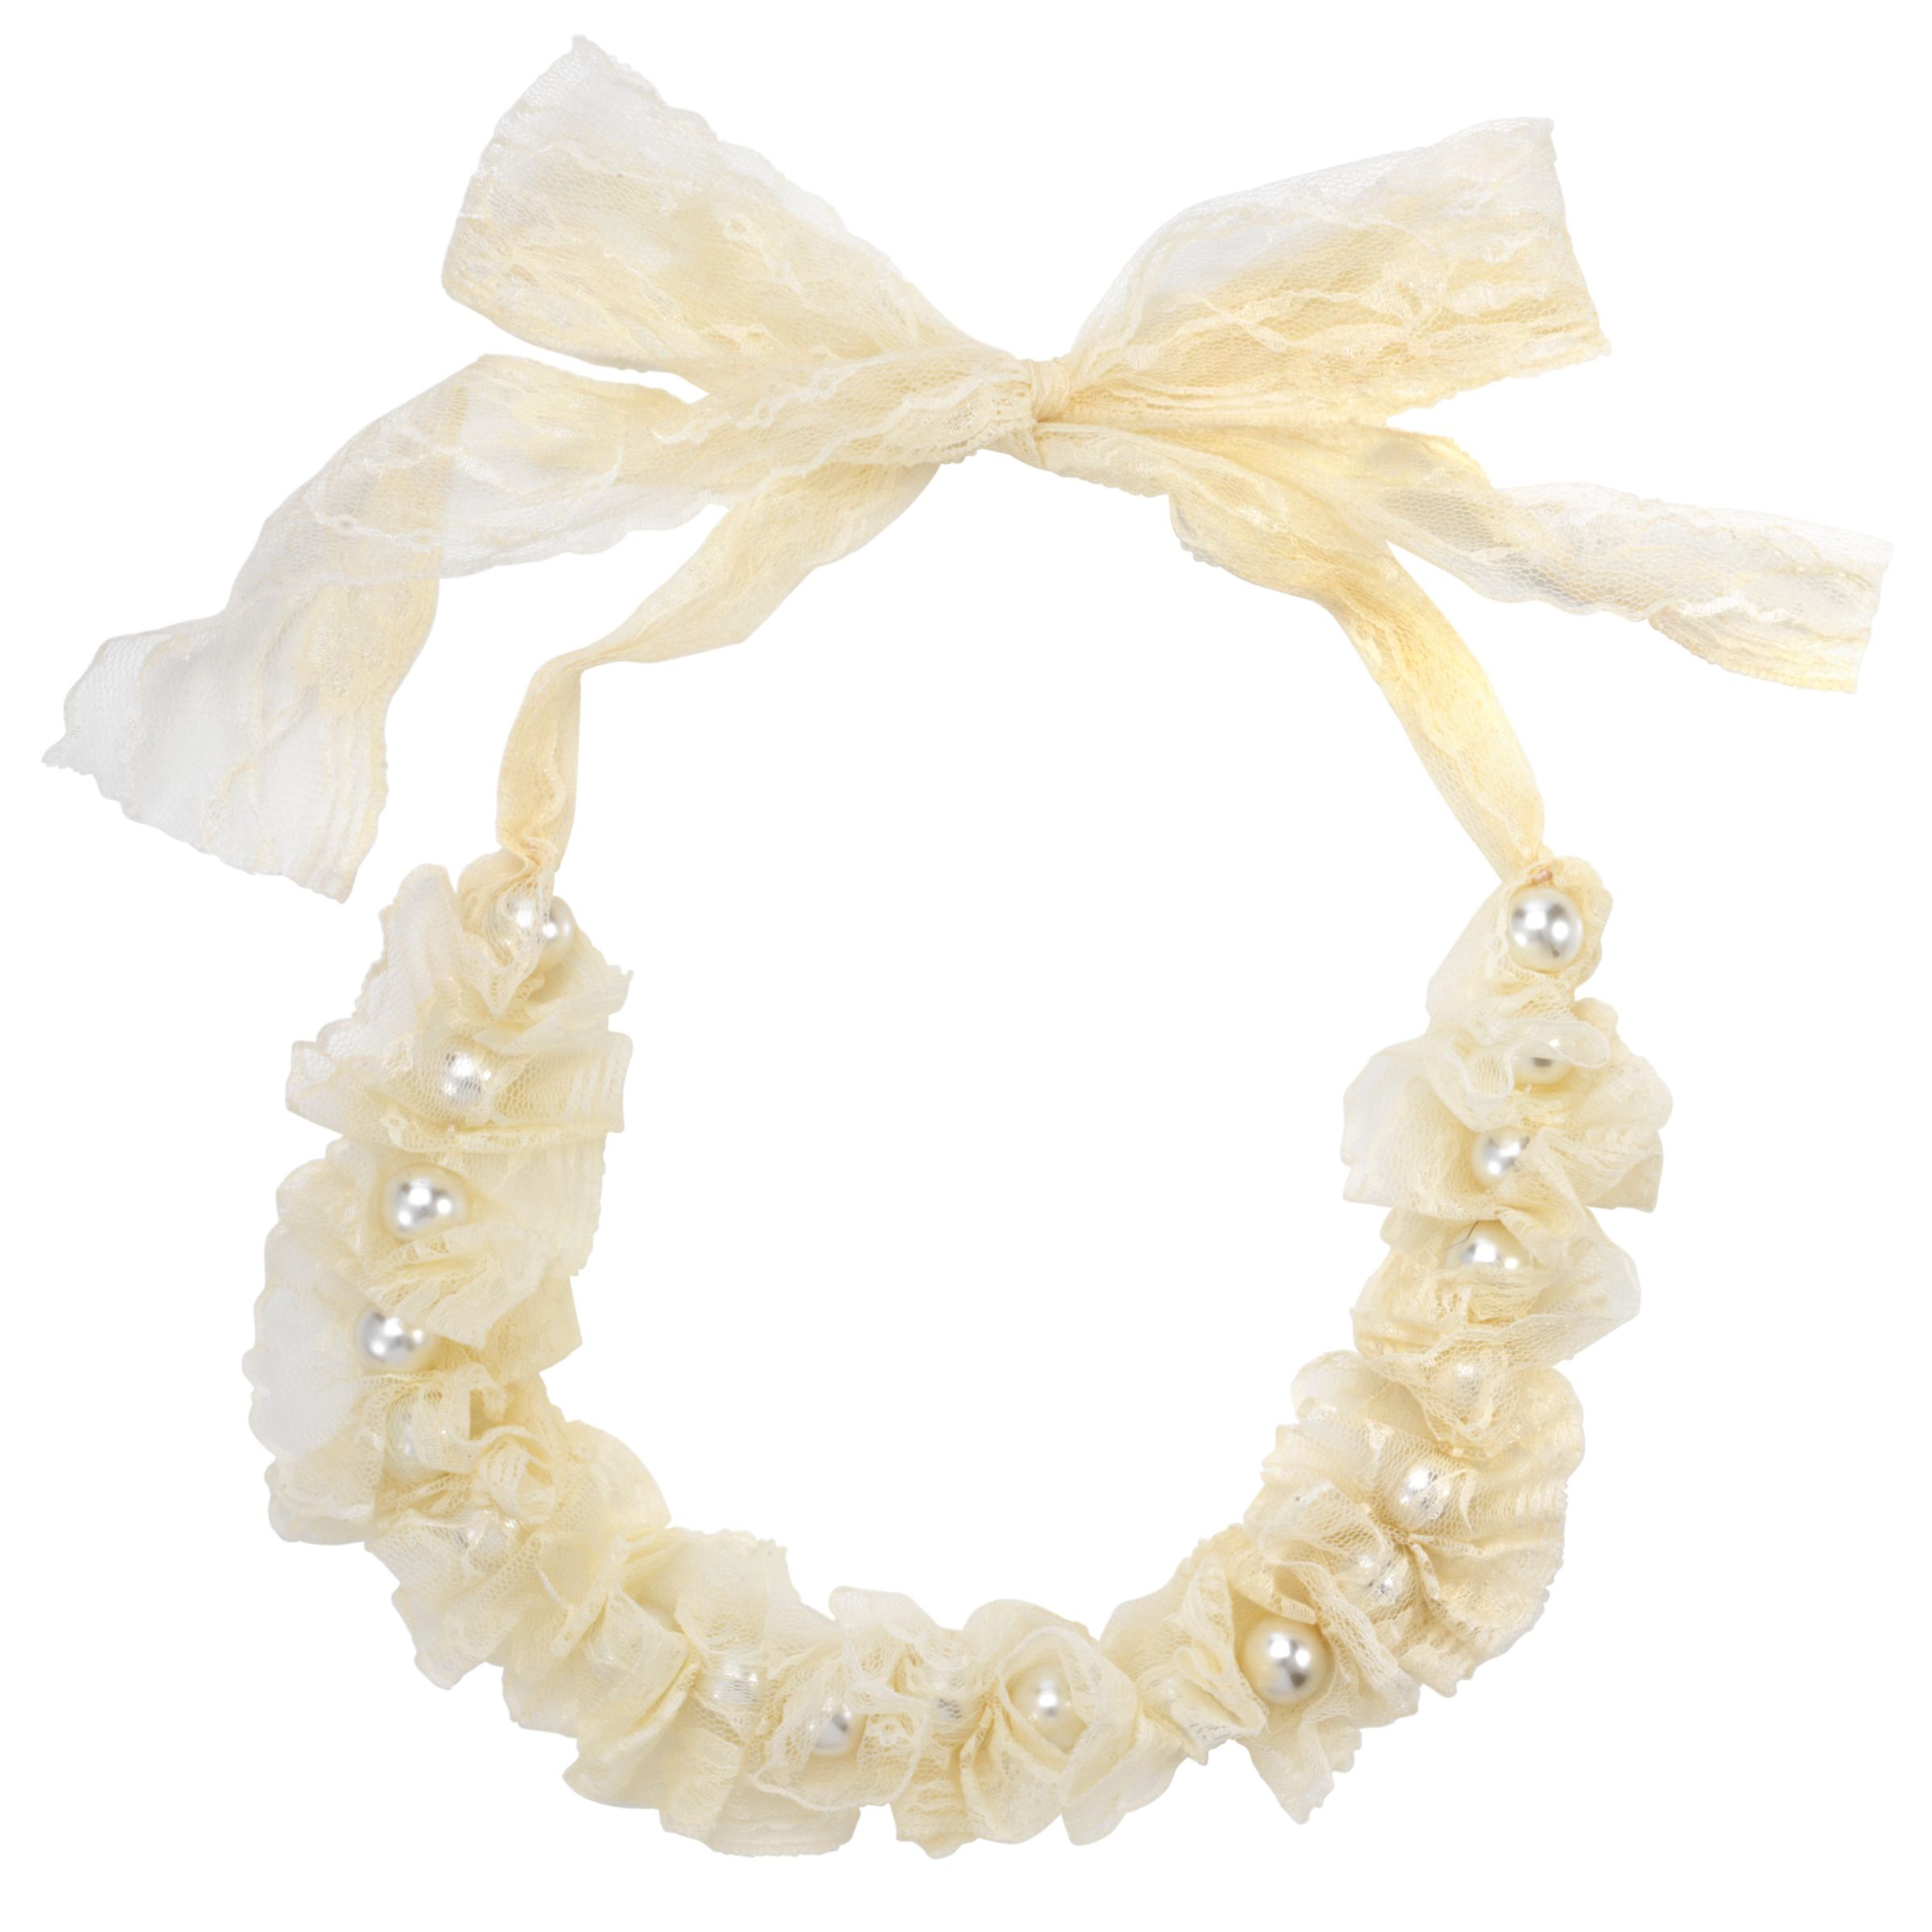 Adele Marie Cream Lace Pearl Necklace